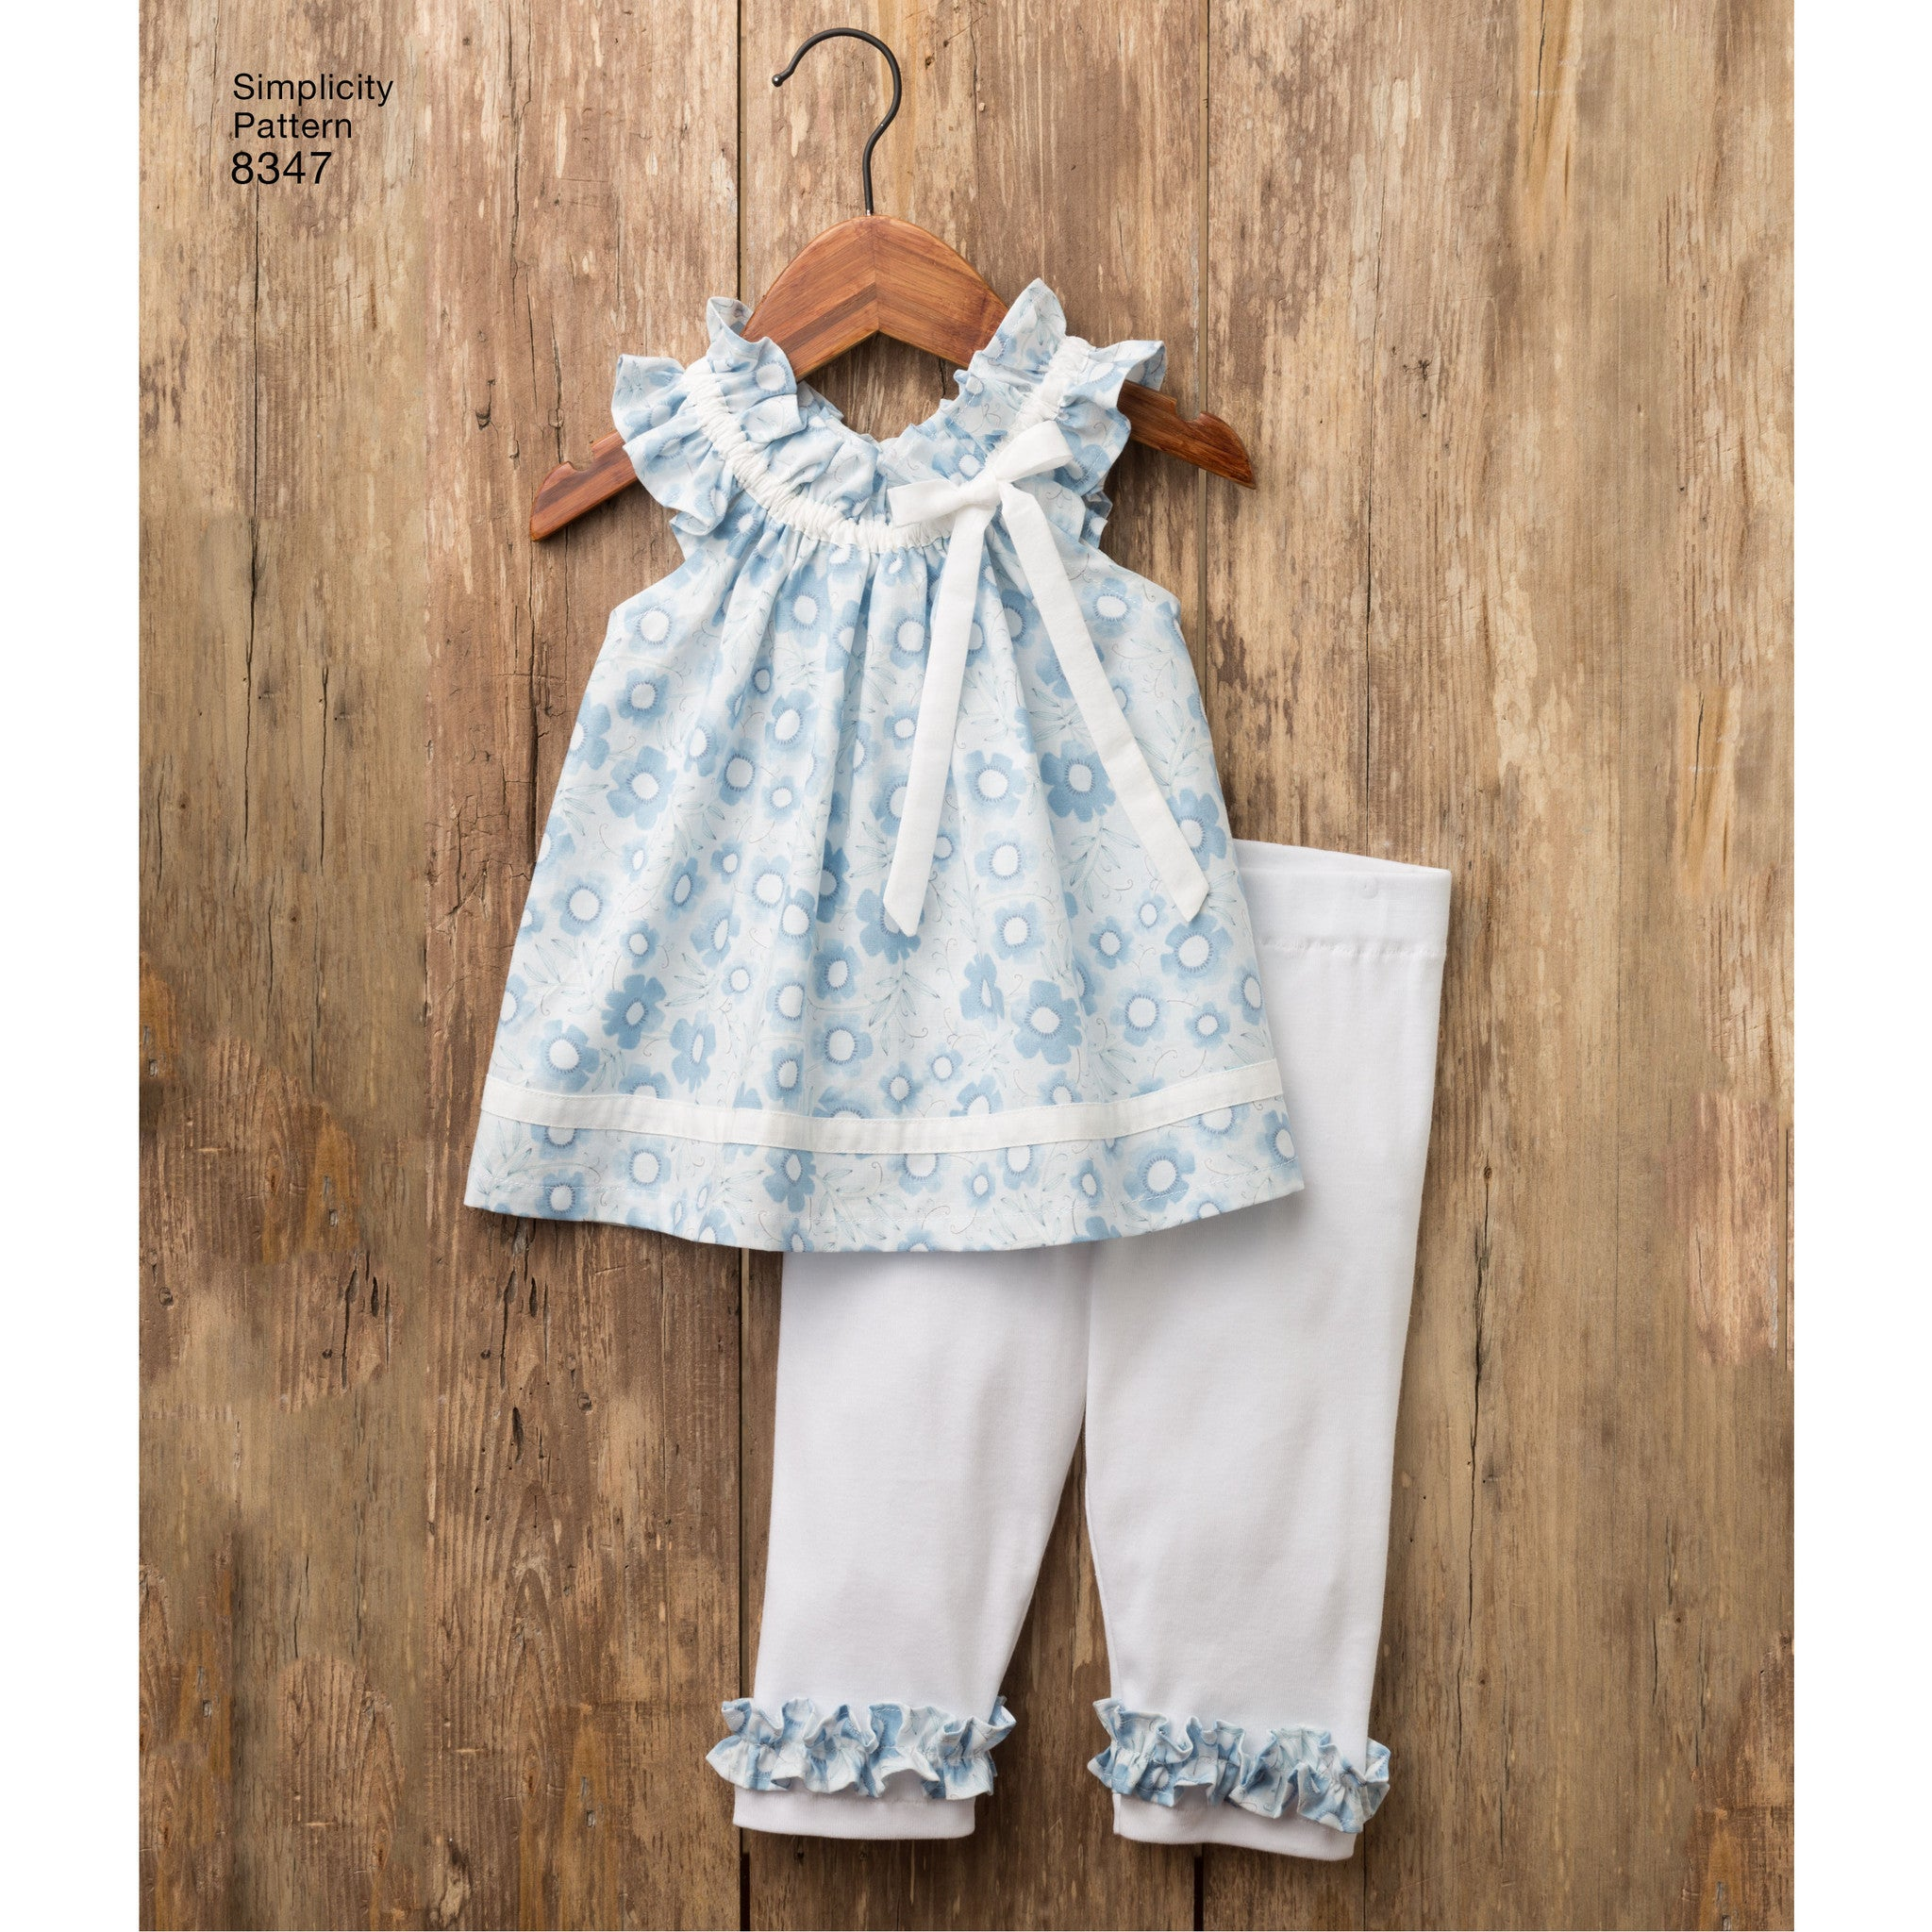 S8347 Toddlers\' dress, top and knit capris, and stuffed bunny ...